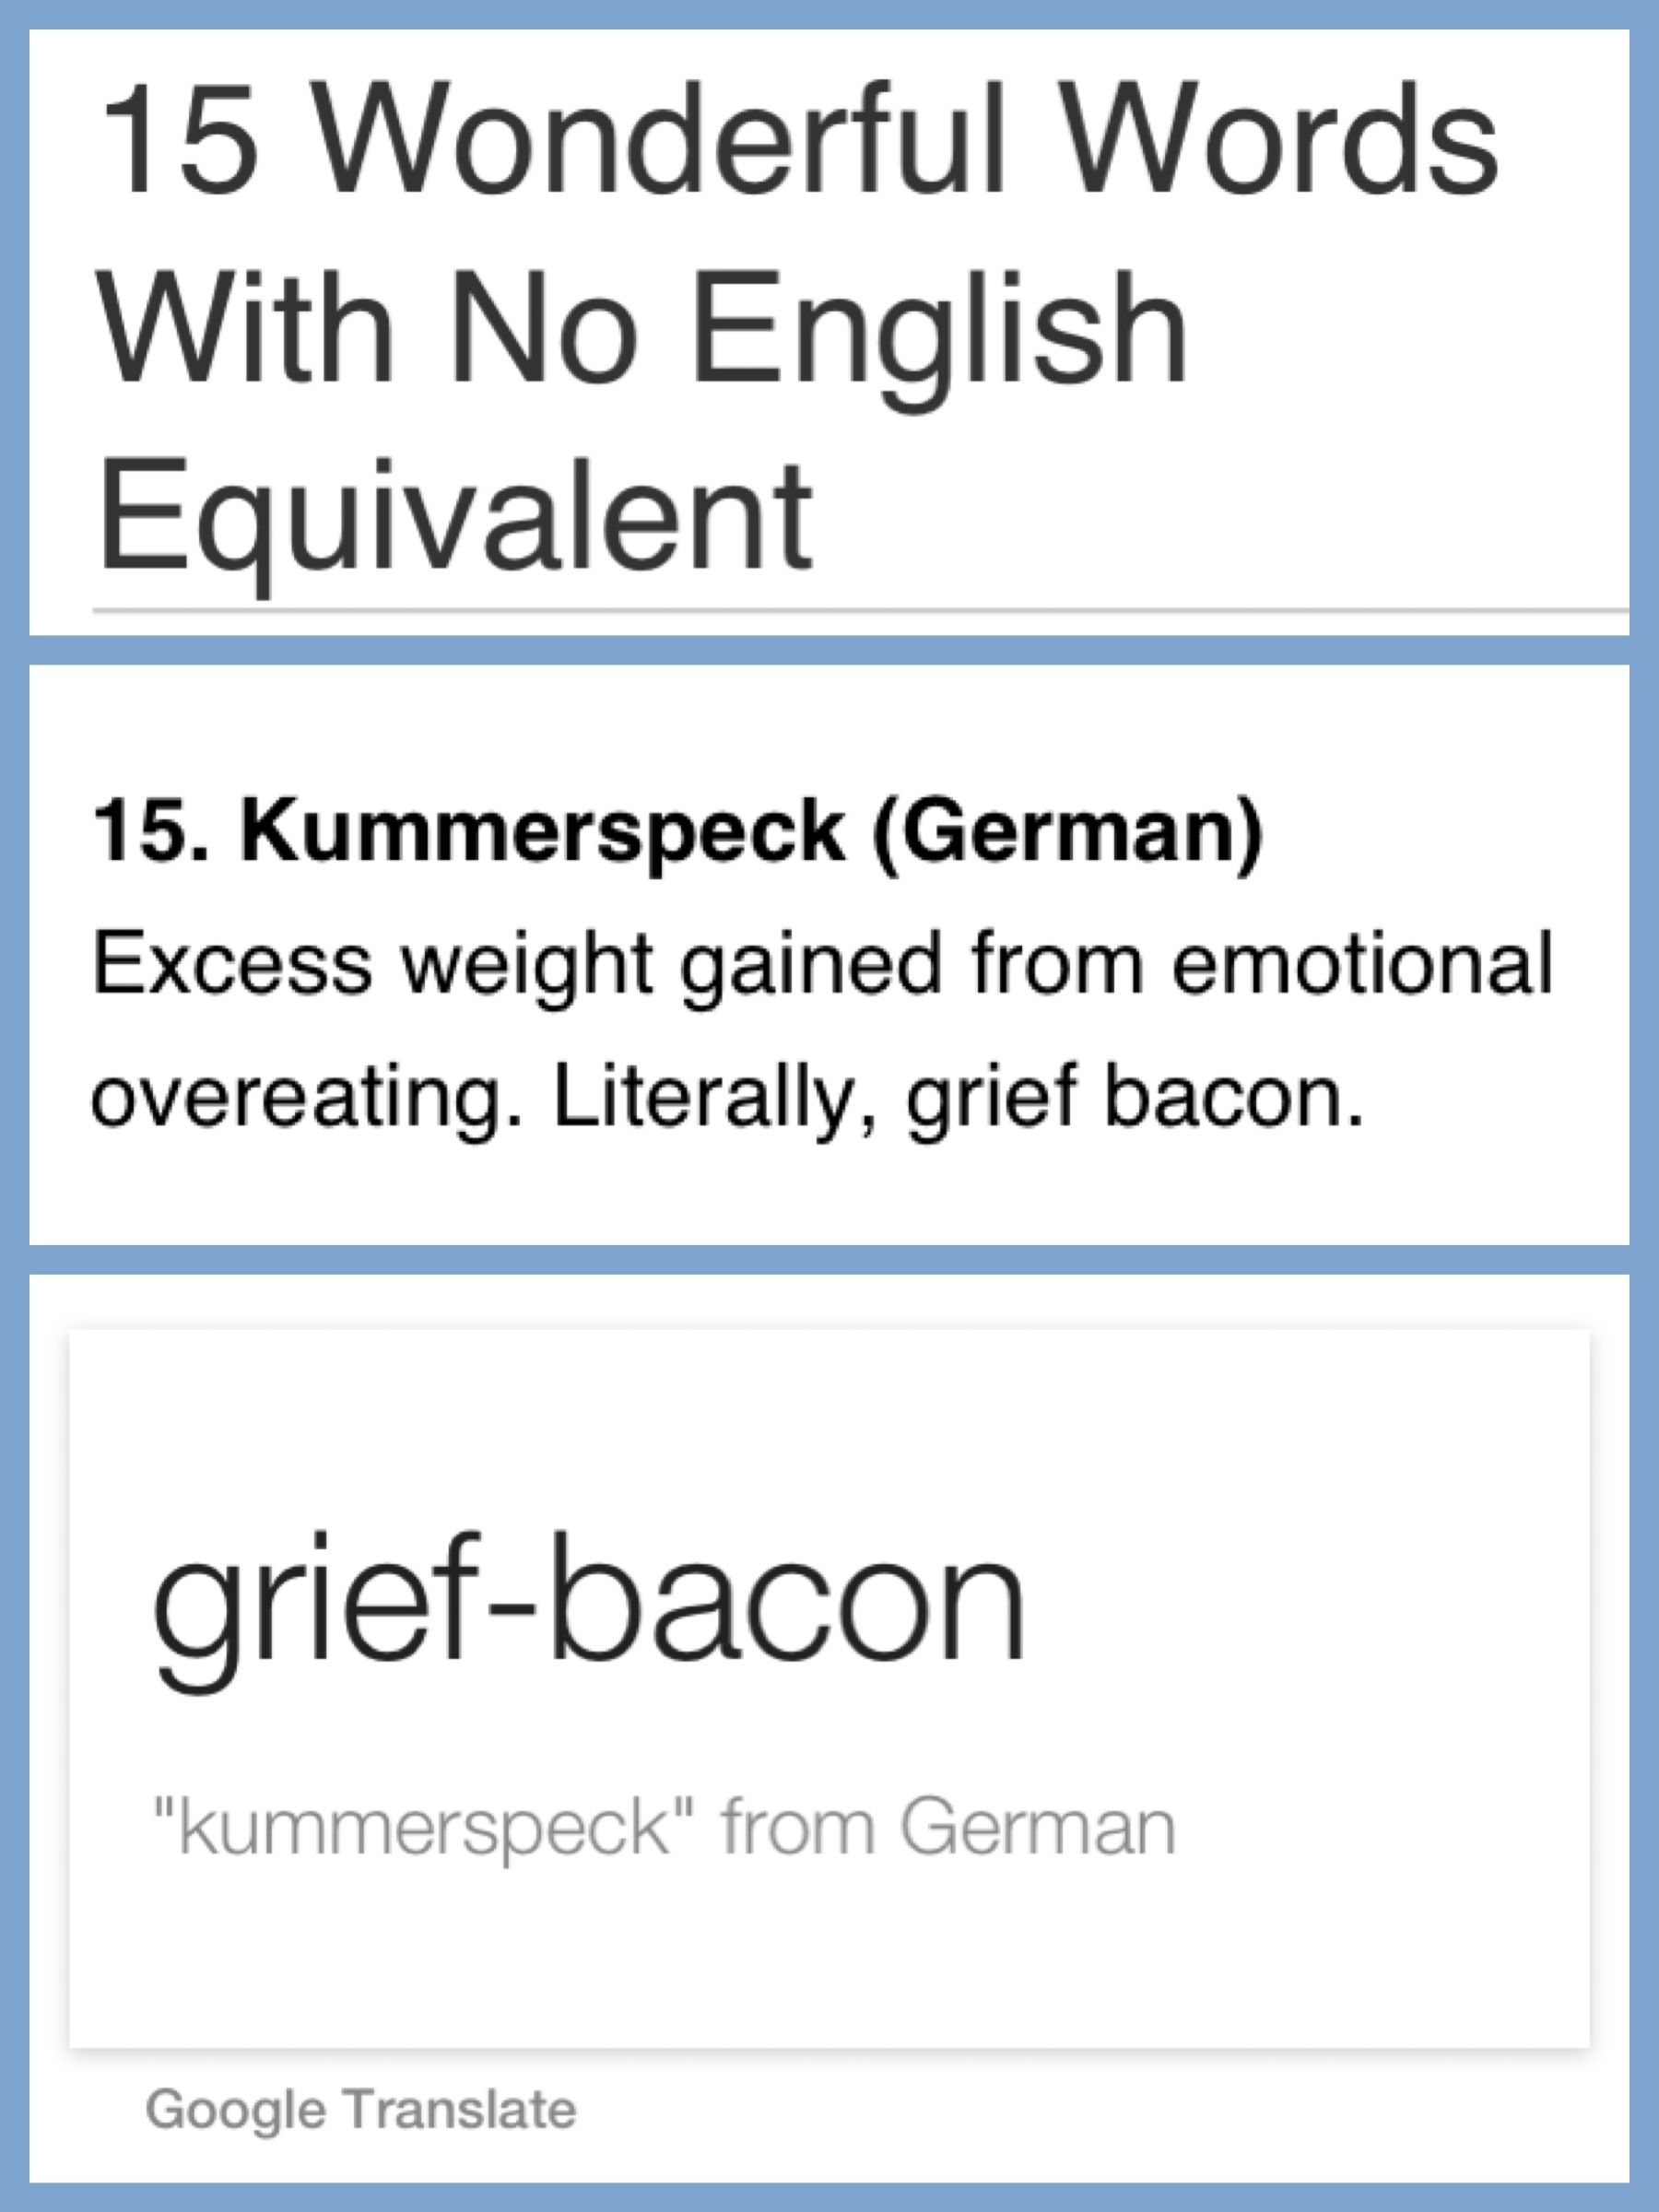 German Has A Lot Of Wonderful Words That Dont Translate Into English